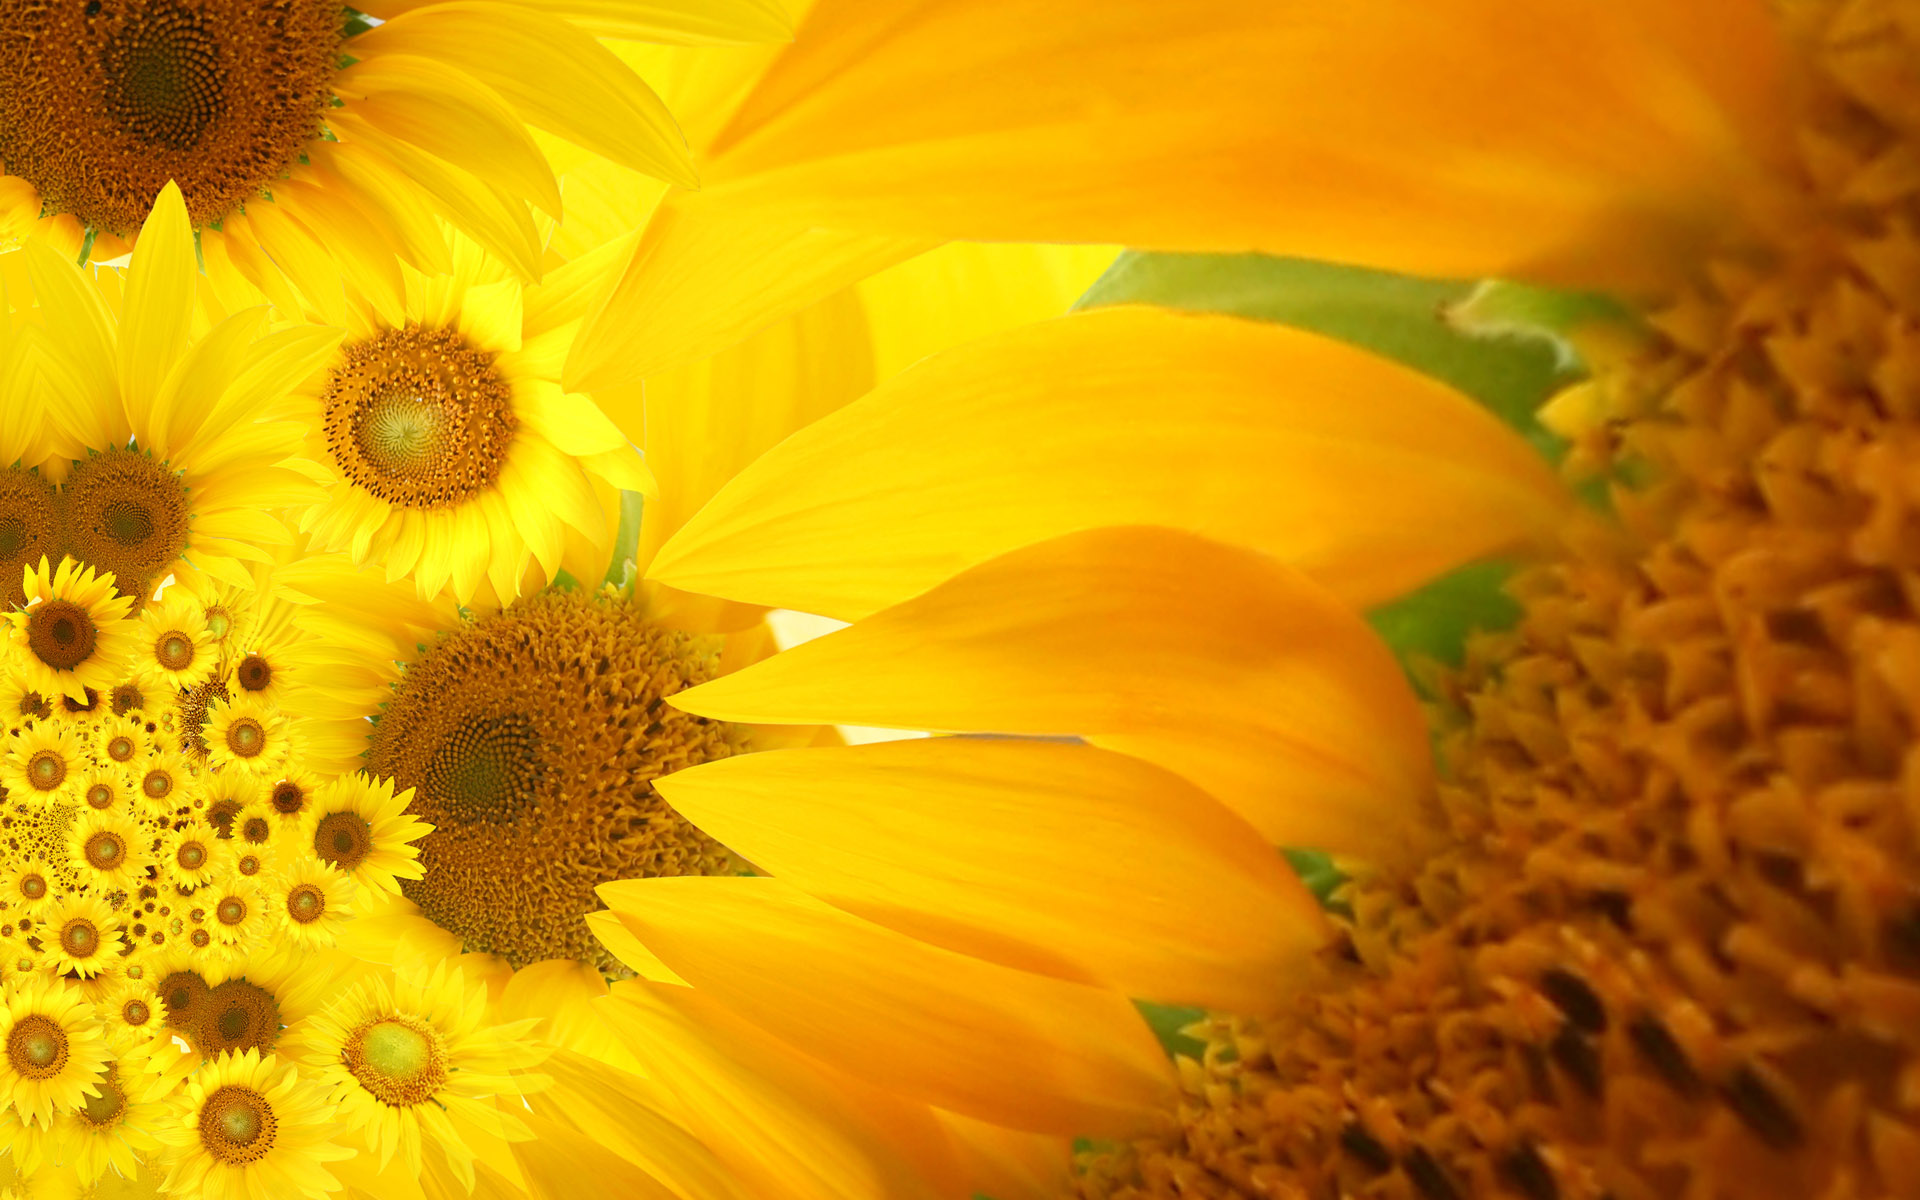 Sunflower close-up 12305